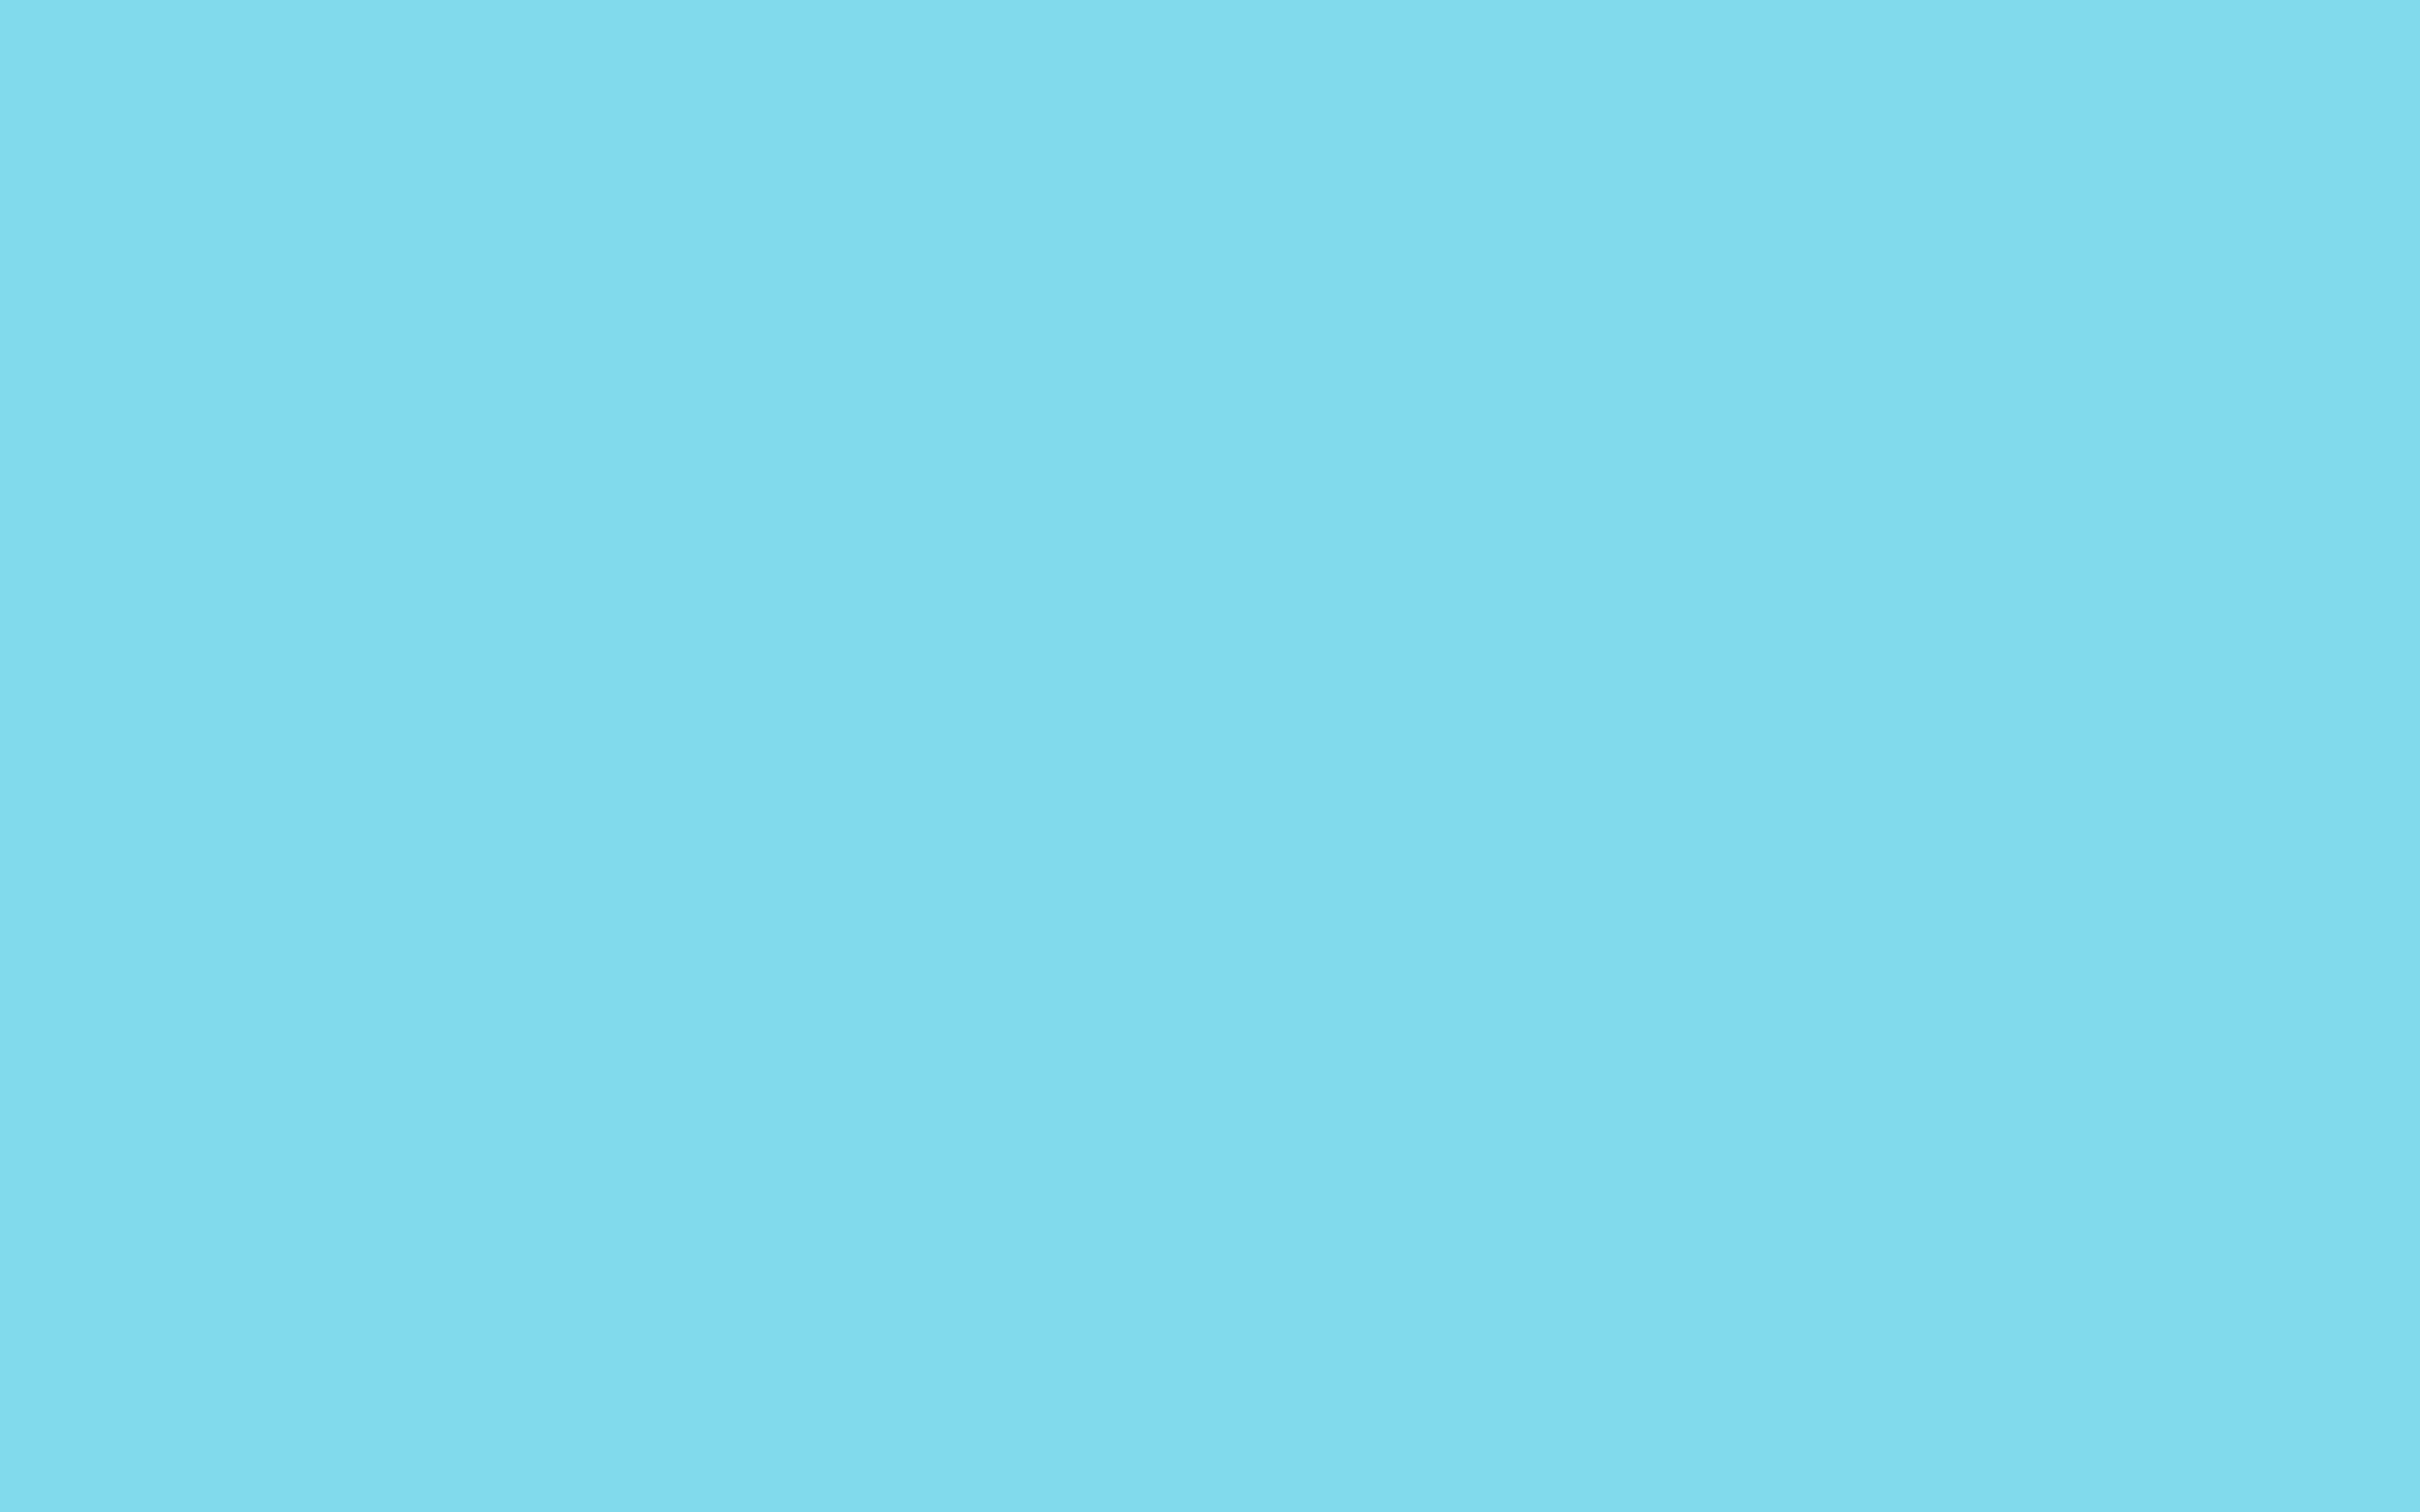 2560x1600 Medium Sky Blue Solid Color Background